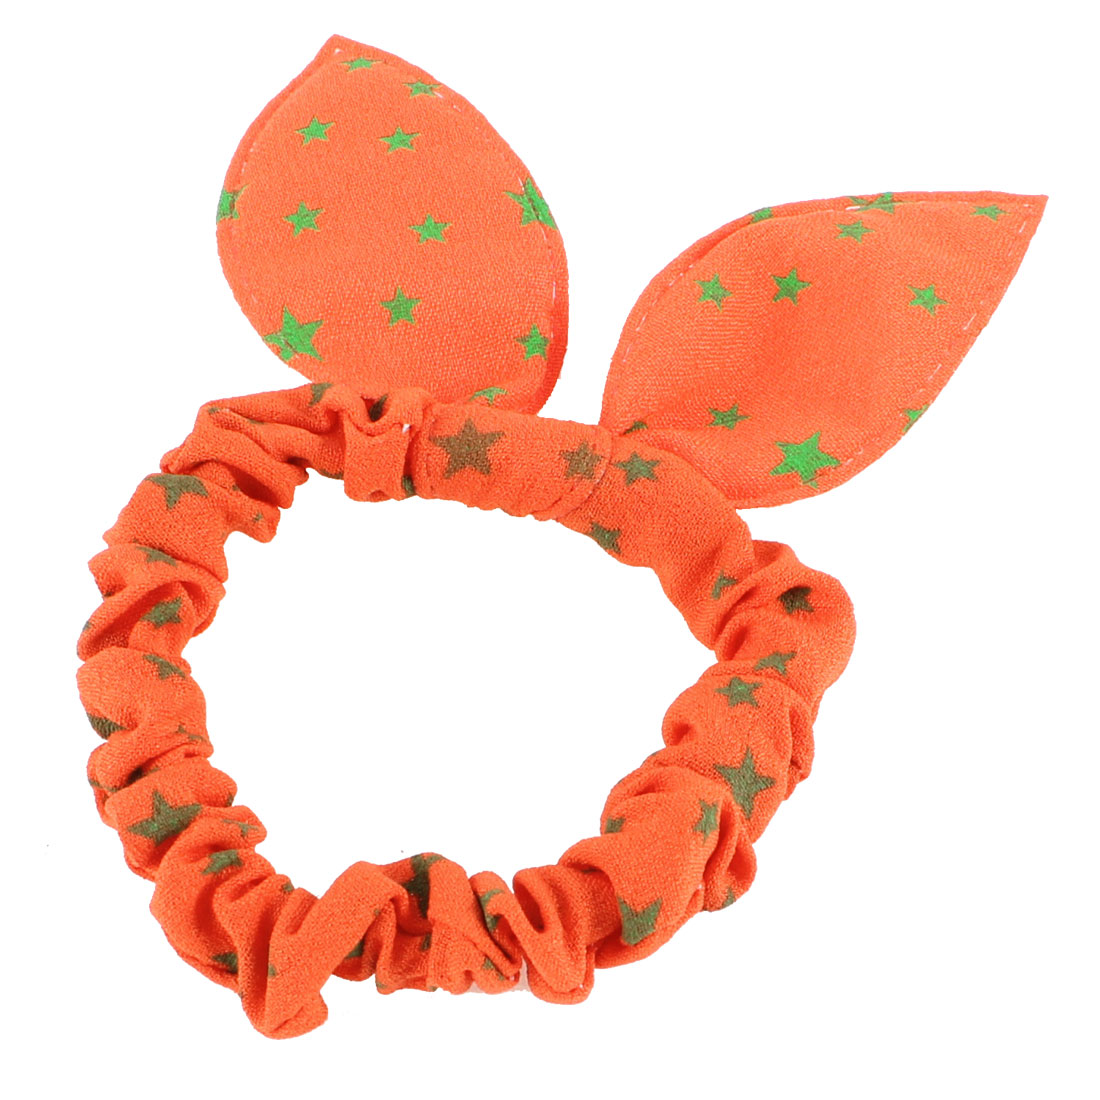 Girls Green Stars Print Rabbit Ear Stretch Hair Tie Ponytail Holder Orange